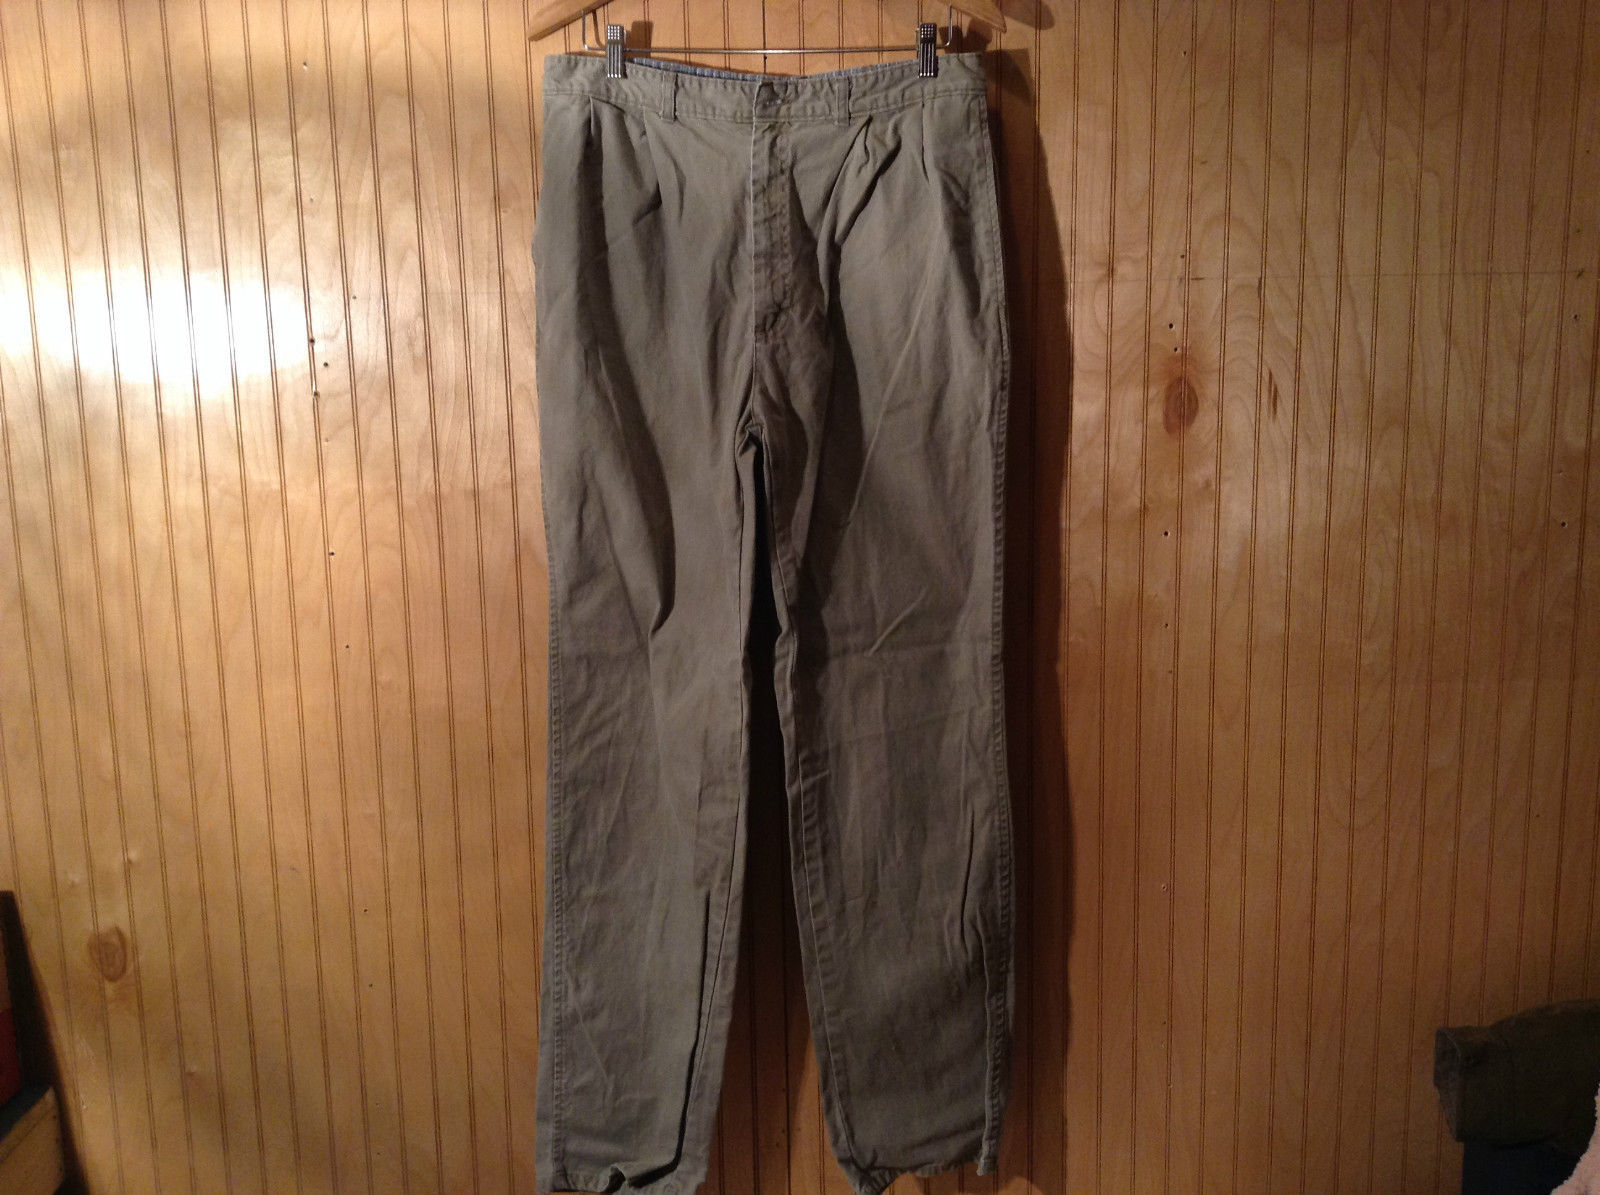 Gray Osh Kosh B' Gosh Regular Fit Casual Dark Khaki Pants Size 34 by 34